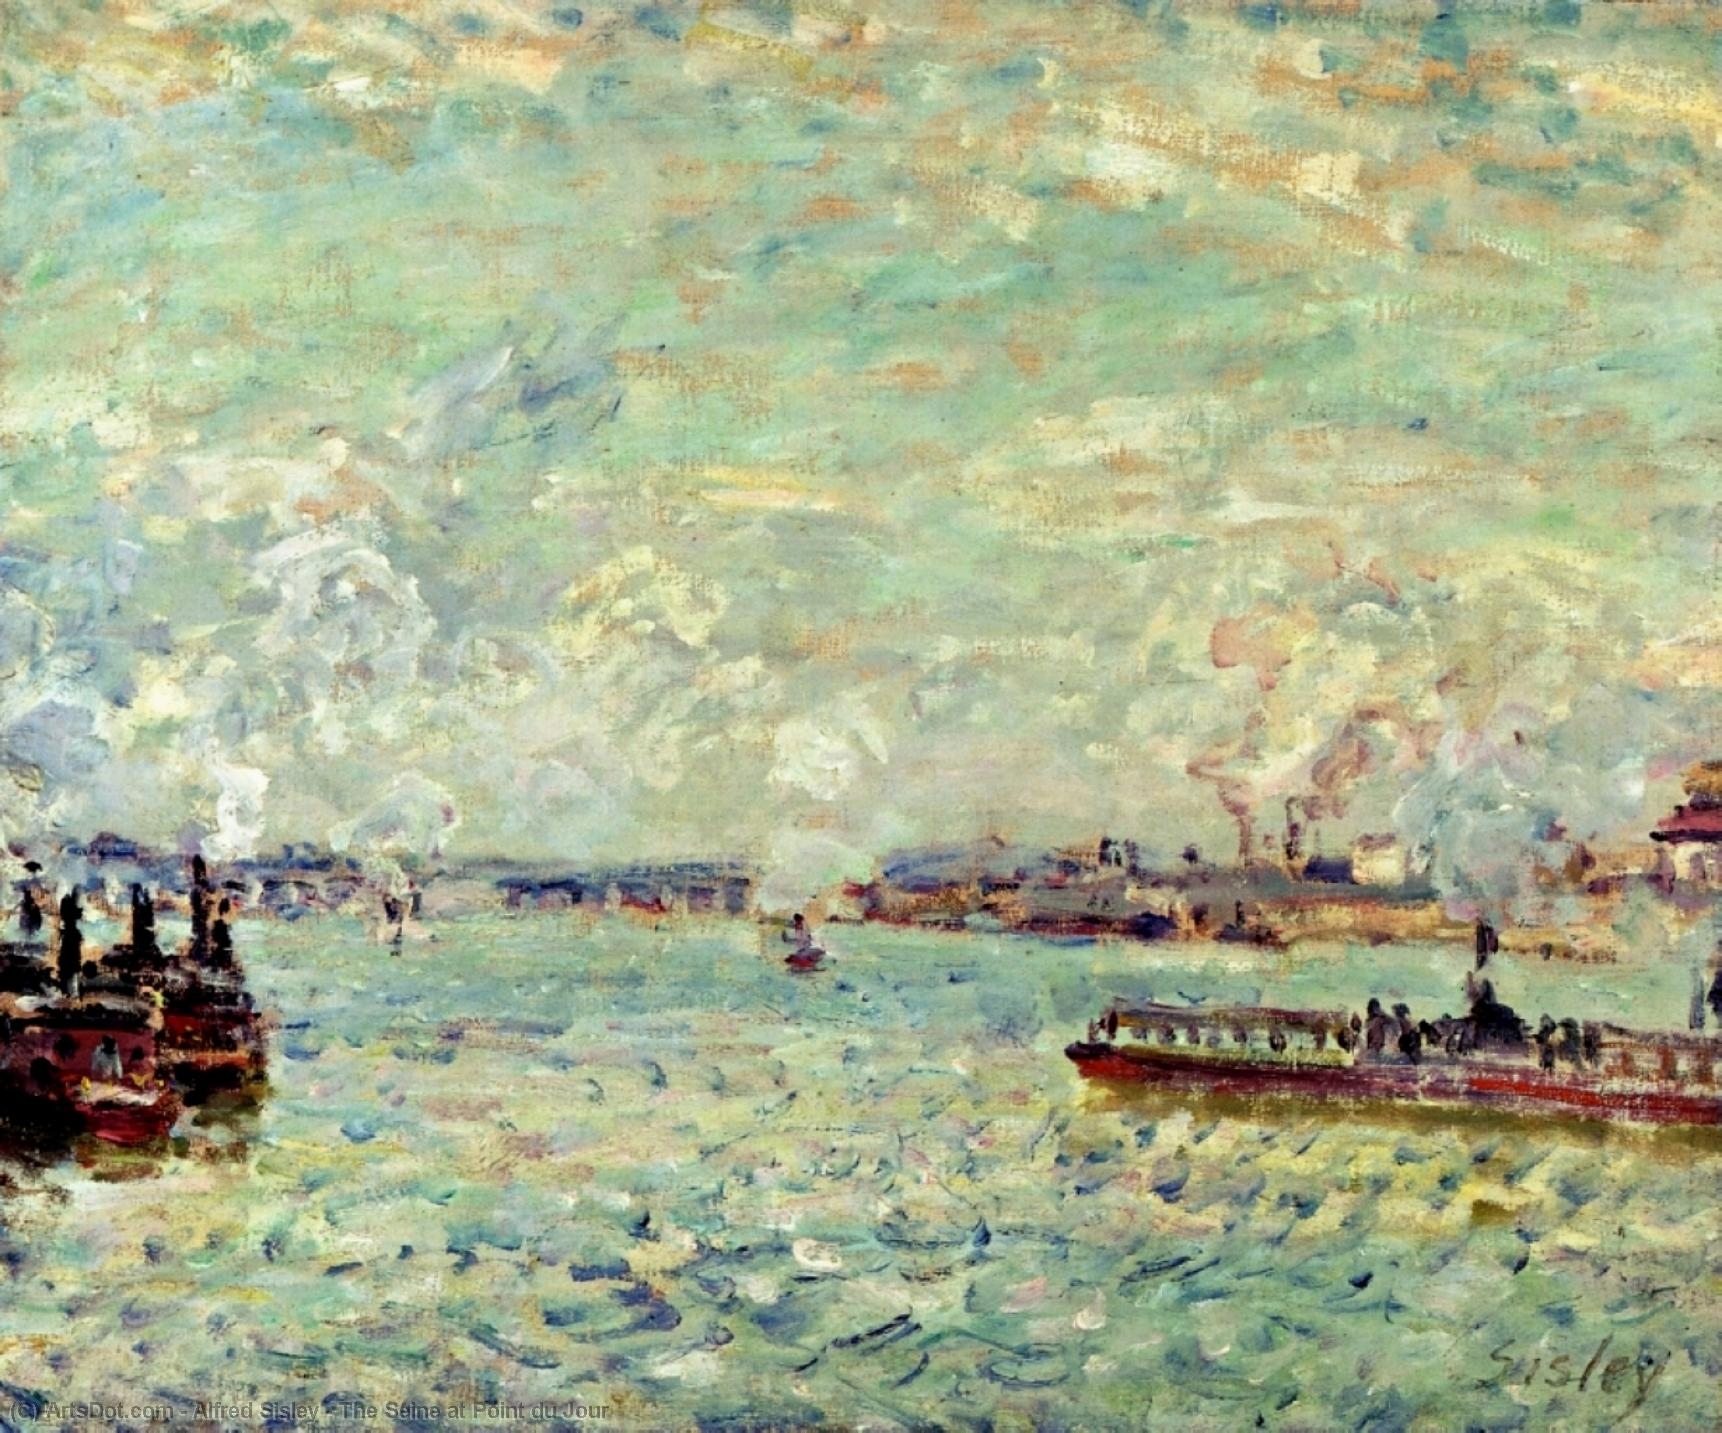 Wikioo.org - The Encyclopedia of Fine Arts - Painting, Artwork by Alfred Sisley - The Seine at Point du Jour